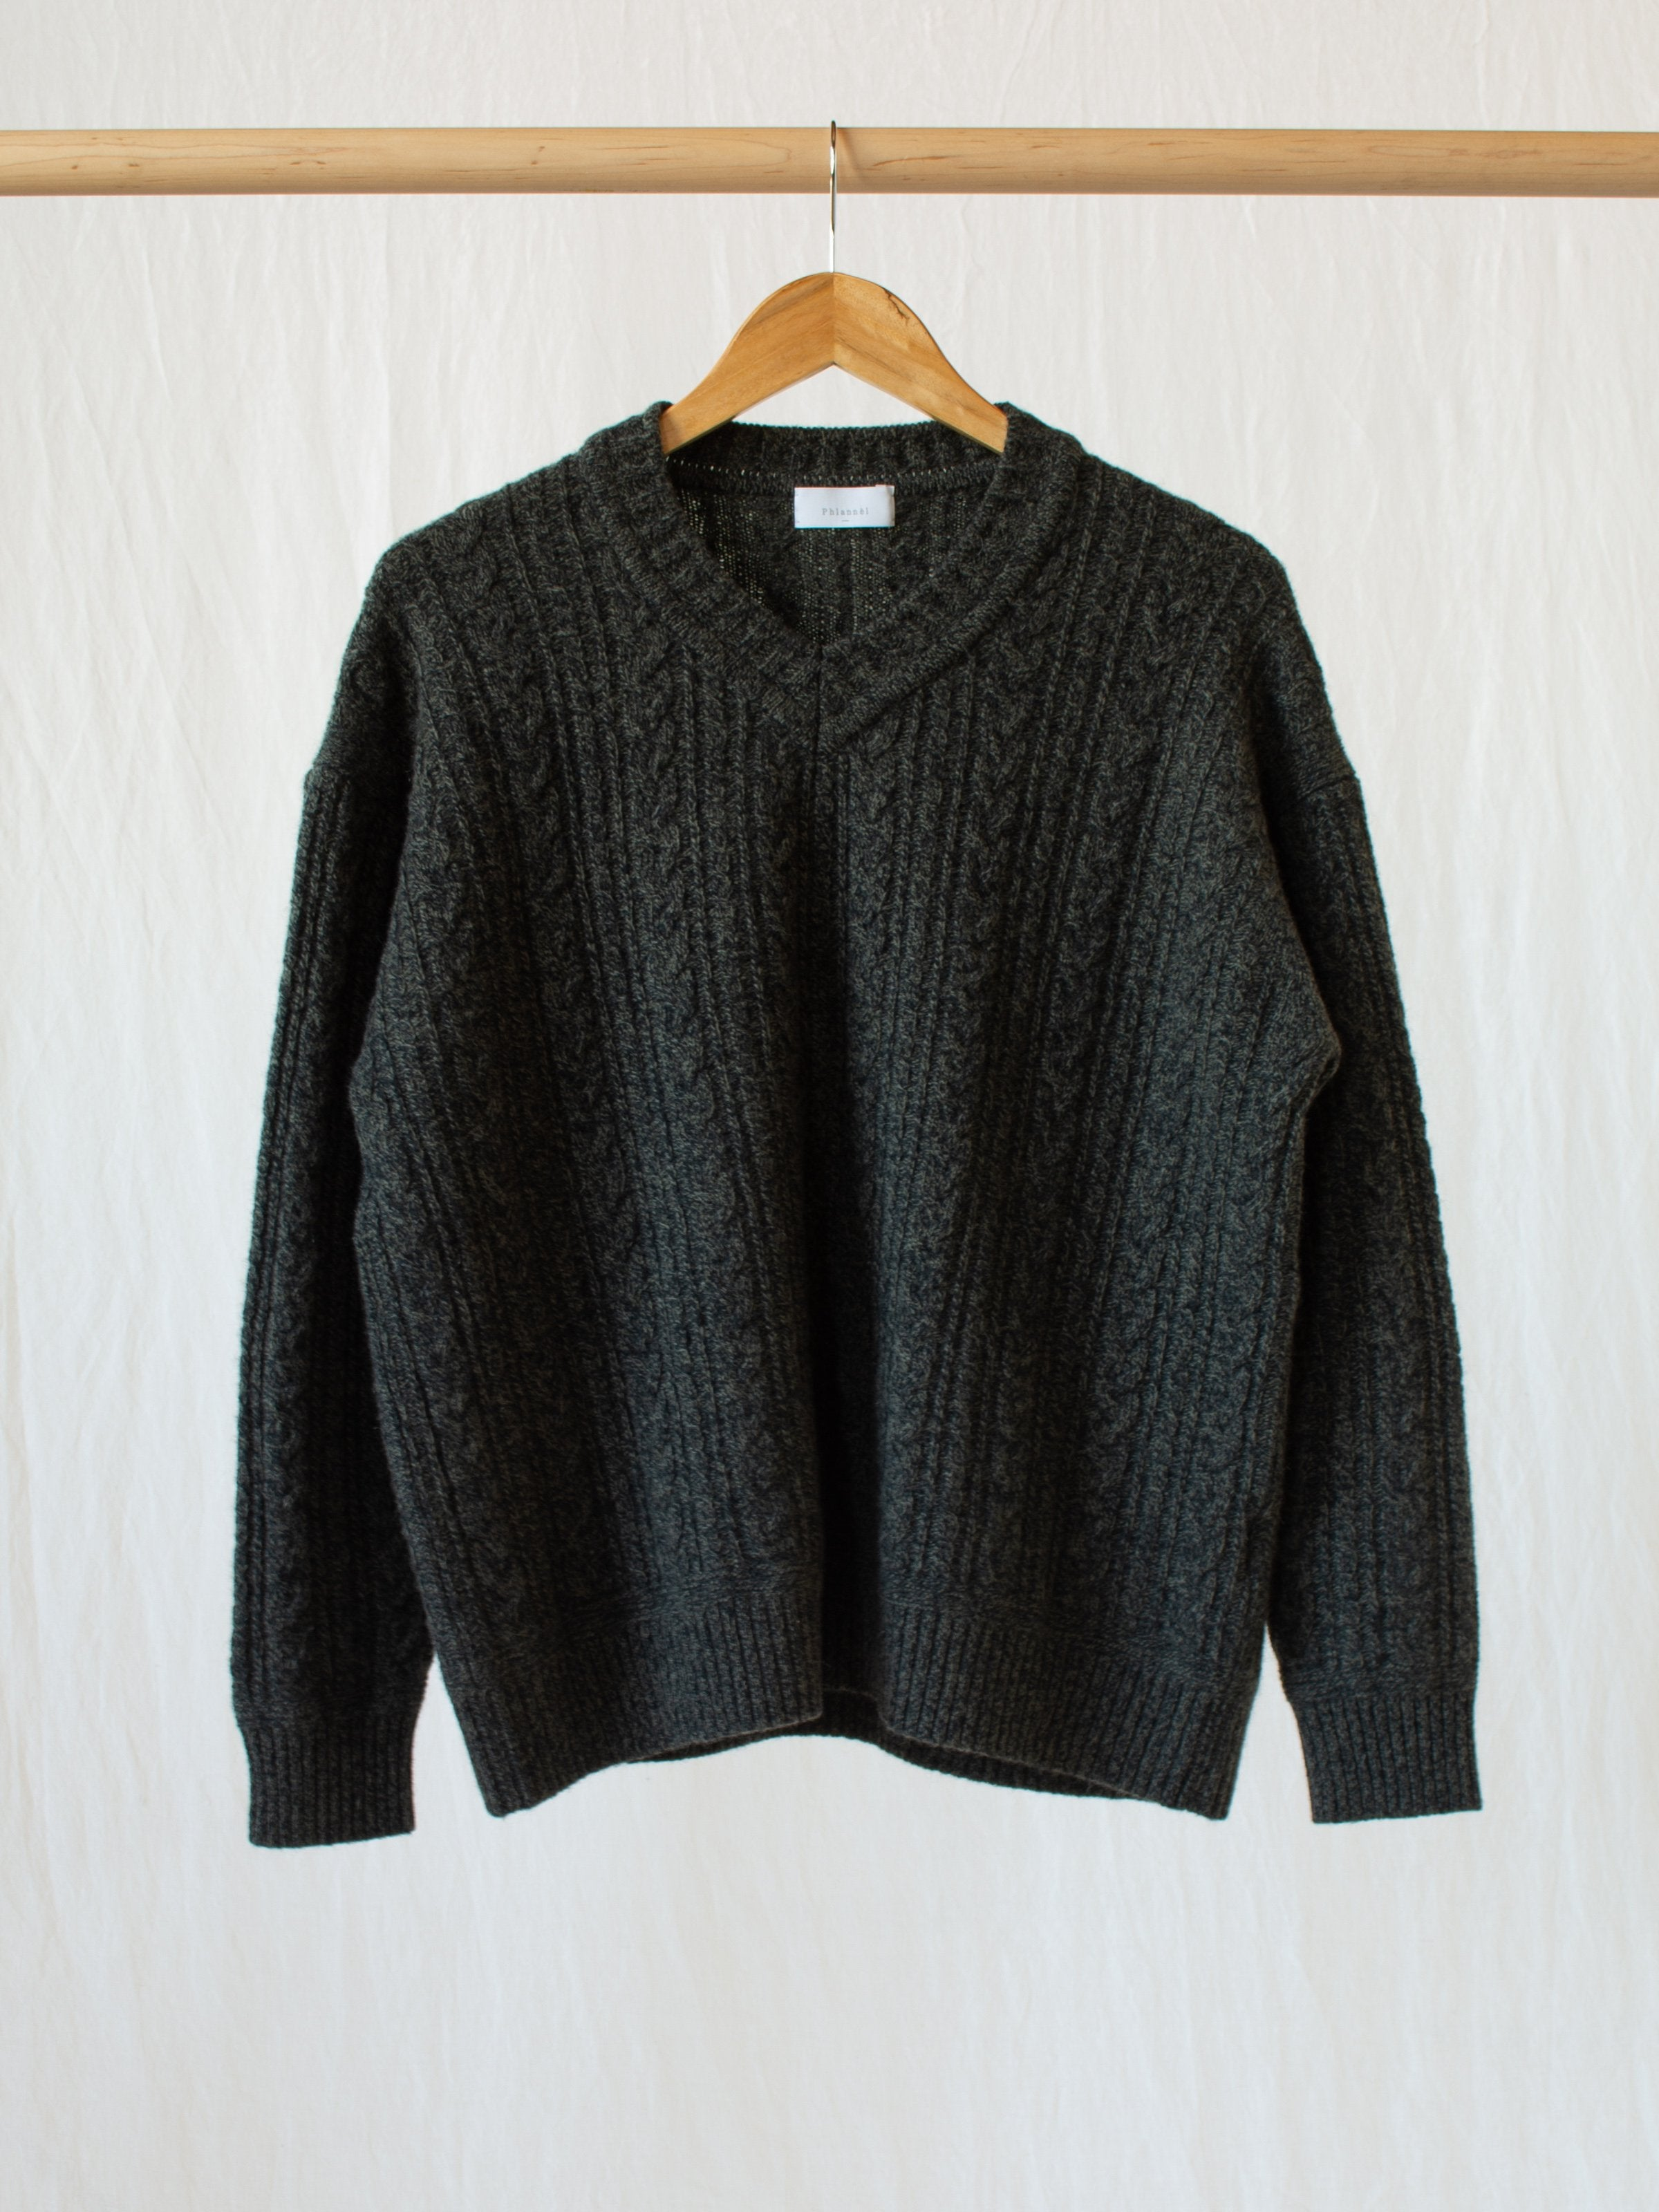 Namu Shop - Phlannel Wool Yak Cable V-Neck Knit - Olive Black